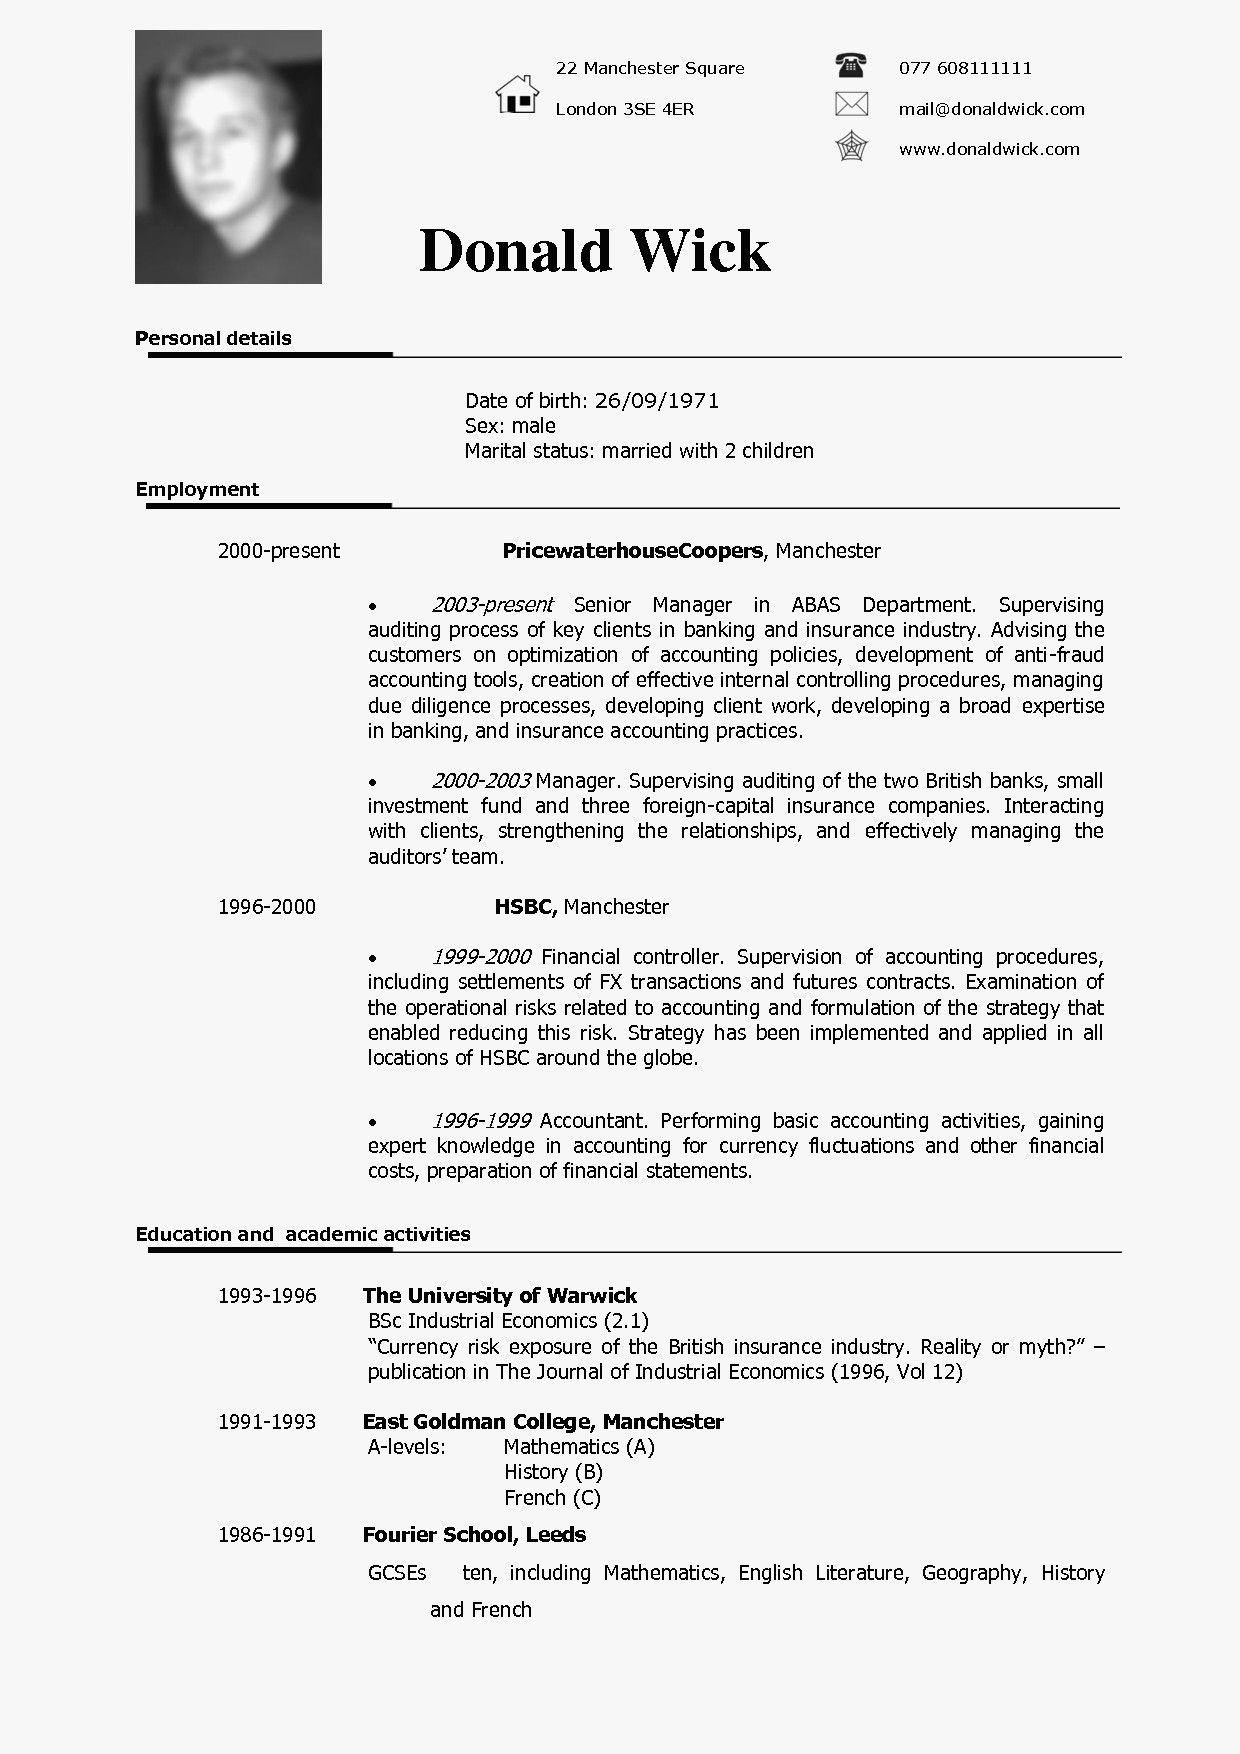 Resume English Examples Burge Bjgmc Tb Org